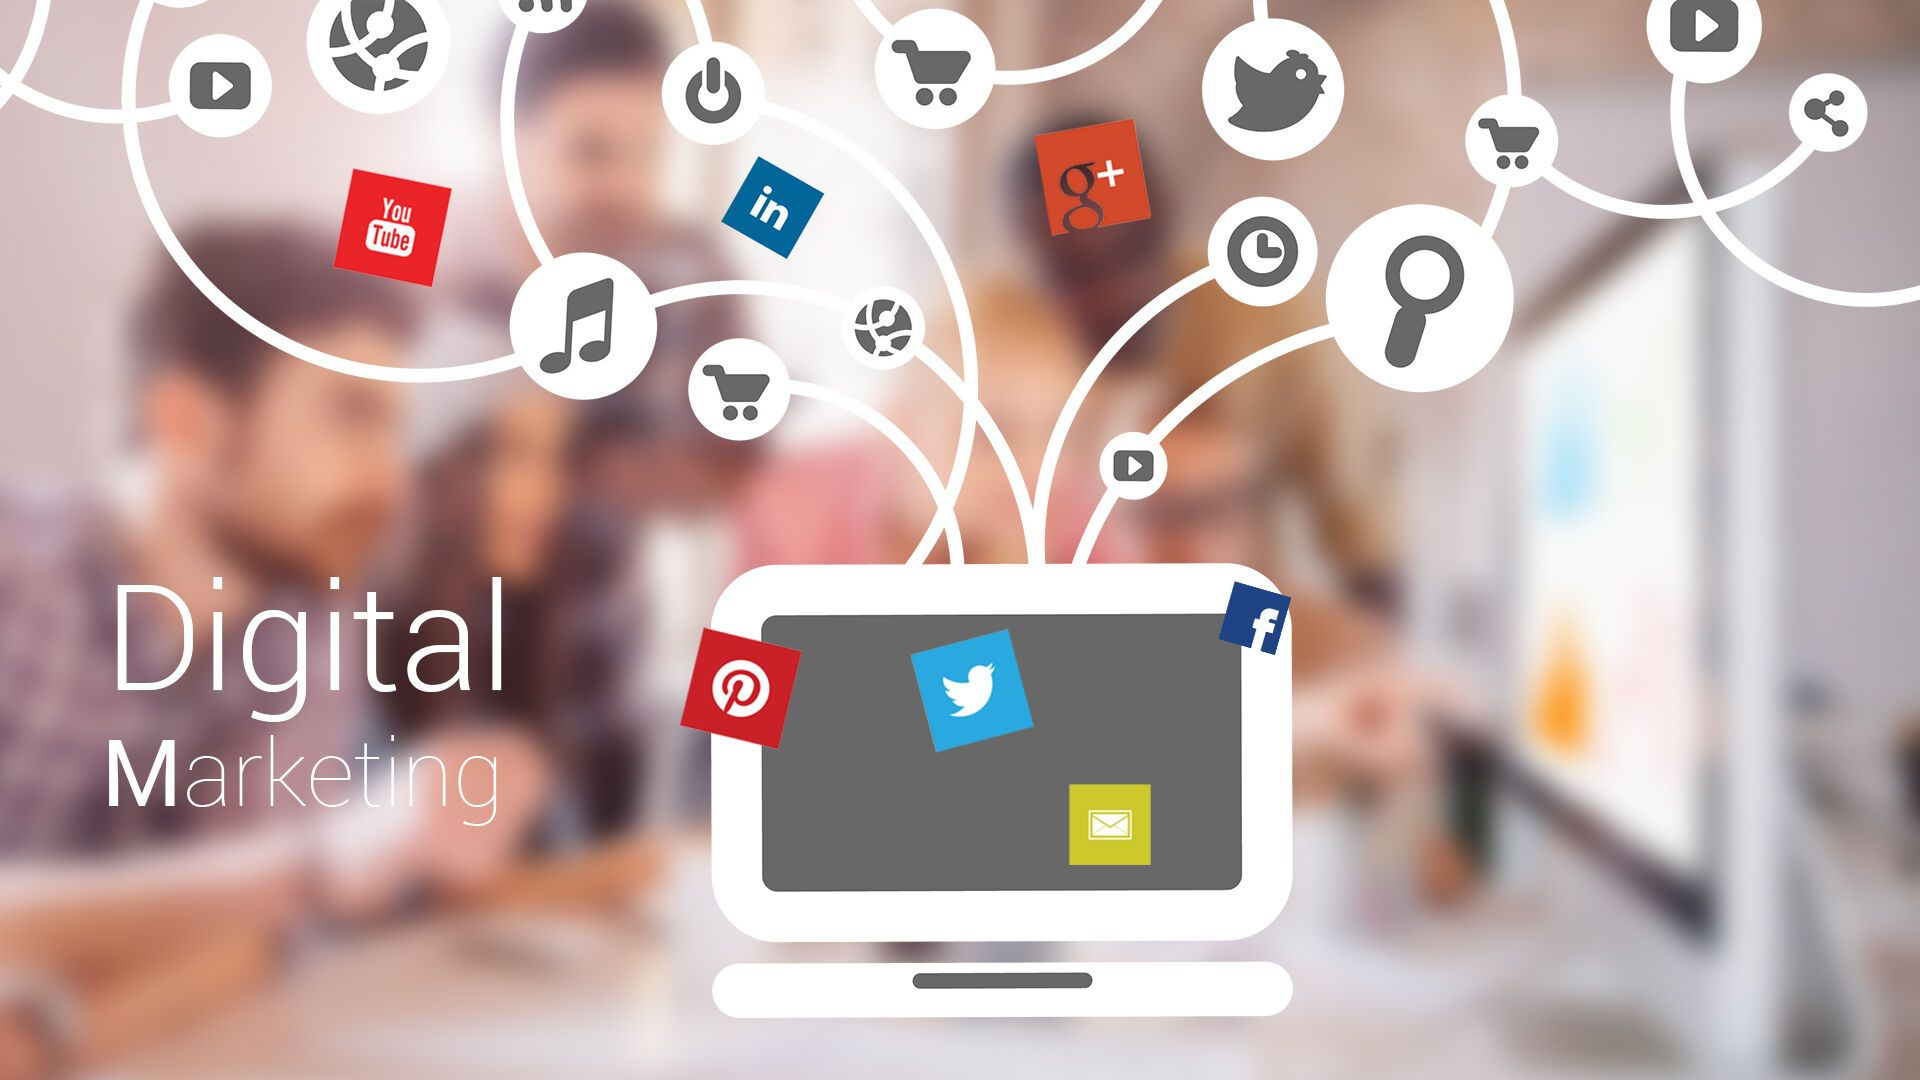 marketing design company services how does Social media are tools that help small business owners attract potential customers, release information or promotions, engage with existing customers, and market your company a great number of.